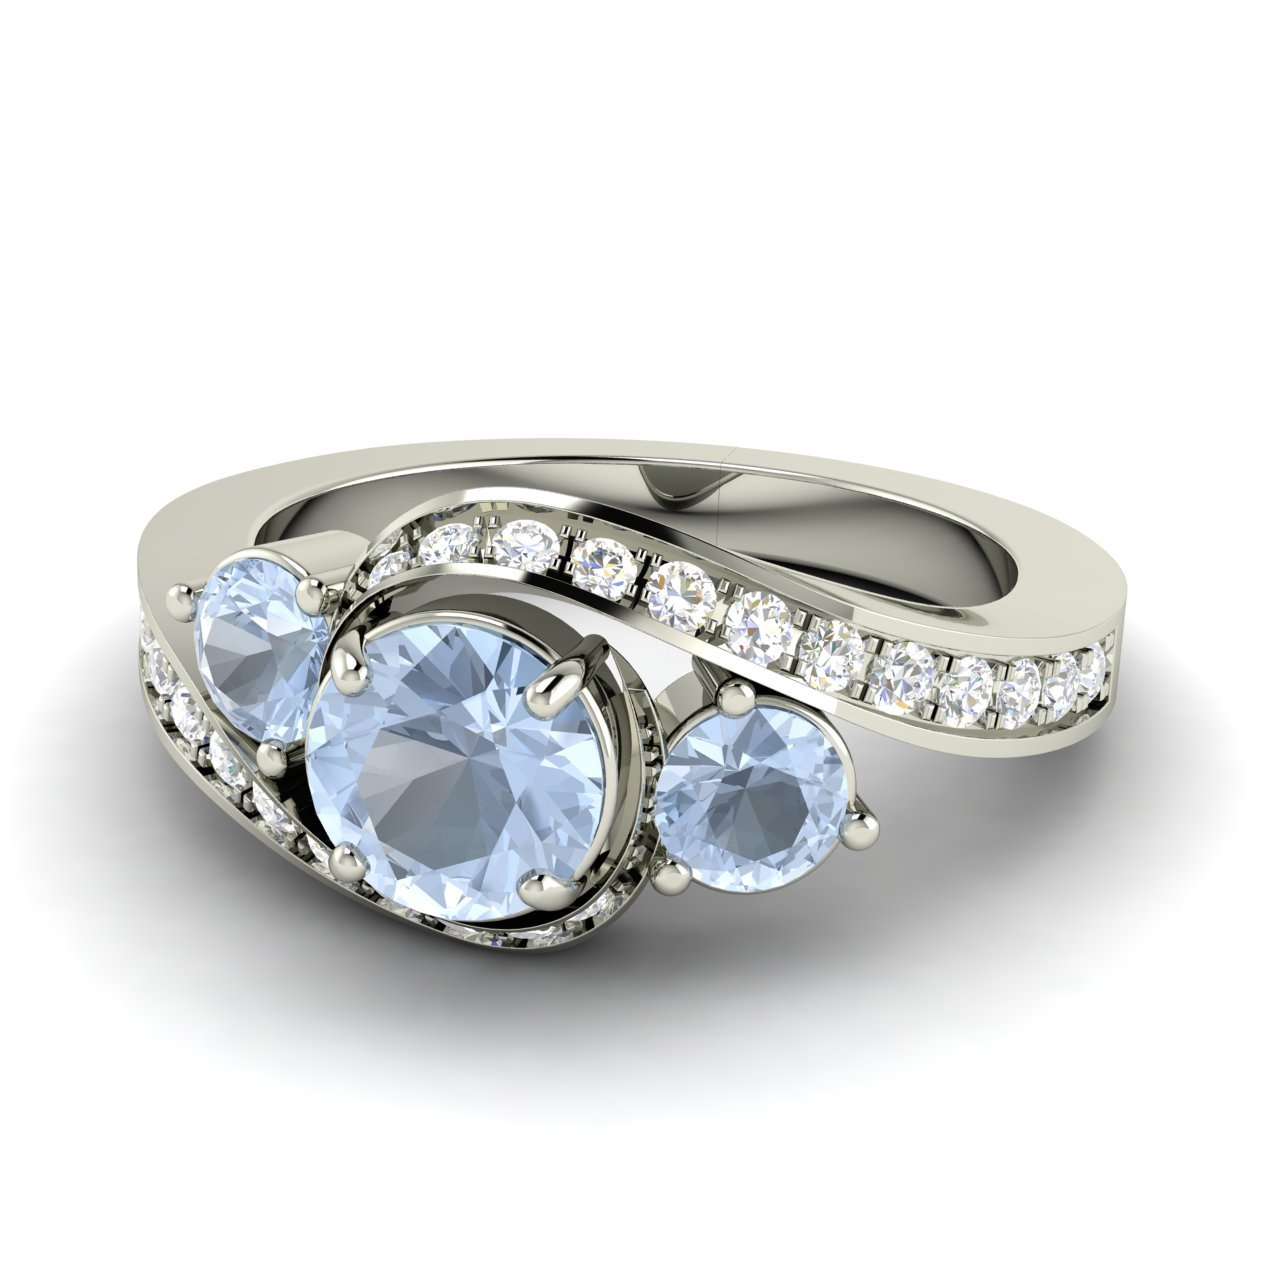 Natural Aquamarine Side-stone Engagement Ring With